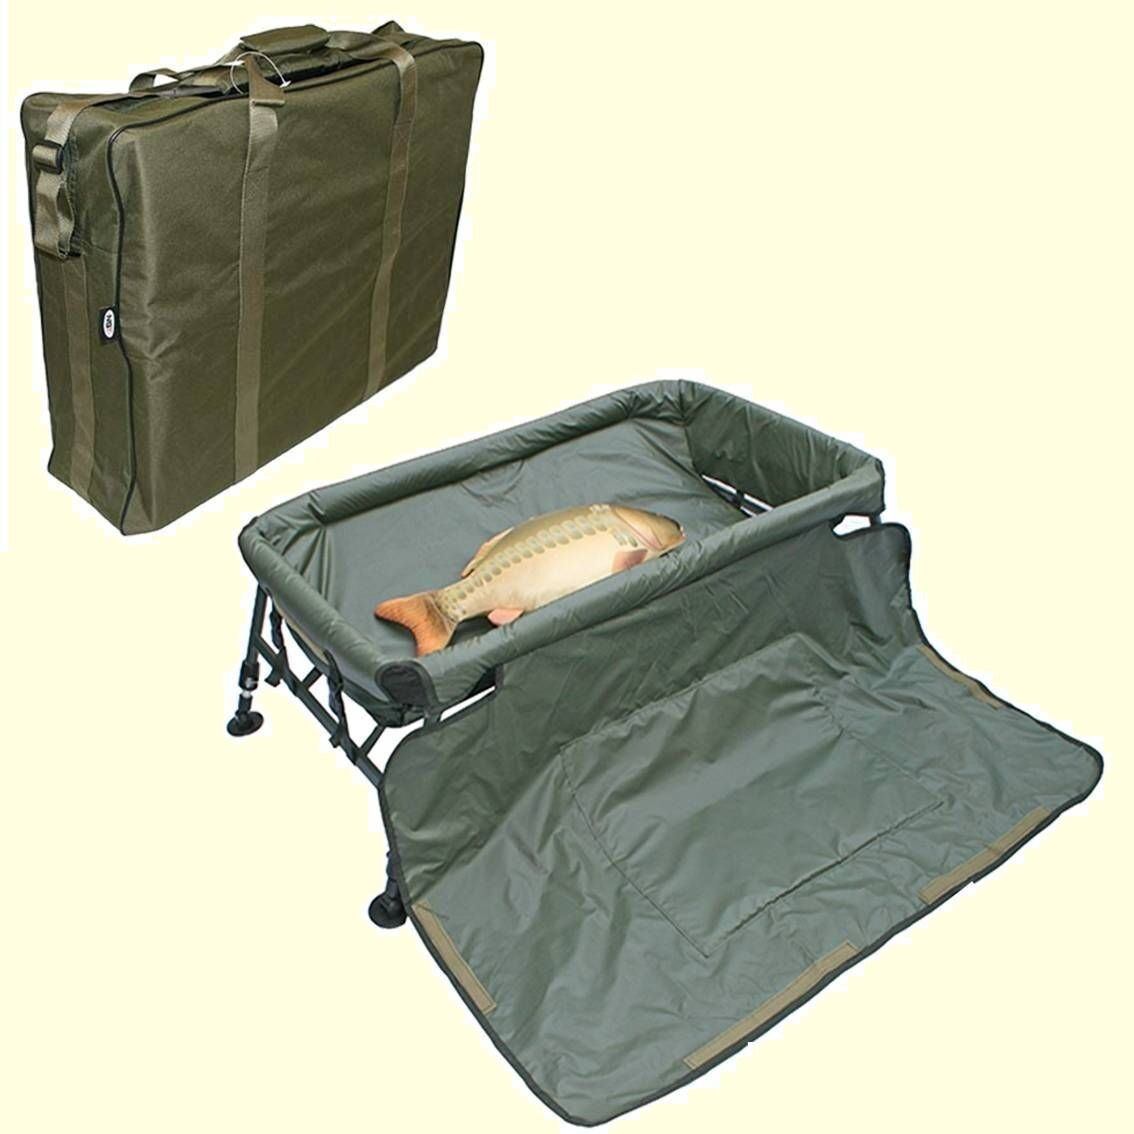 Carp Fishing Cradle Unhooking Mat Folding Sturdy Deluxe Supplied with Carry Bag